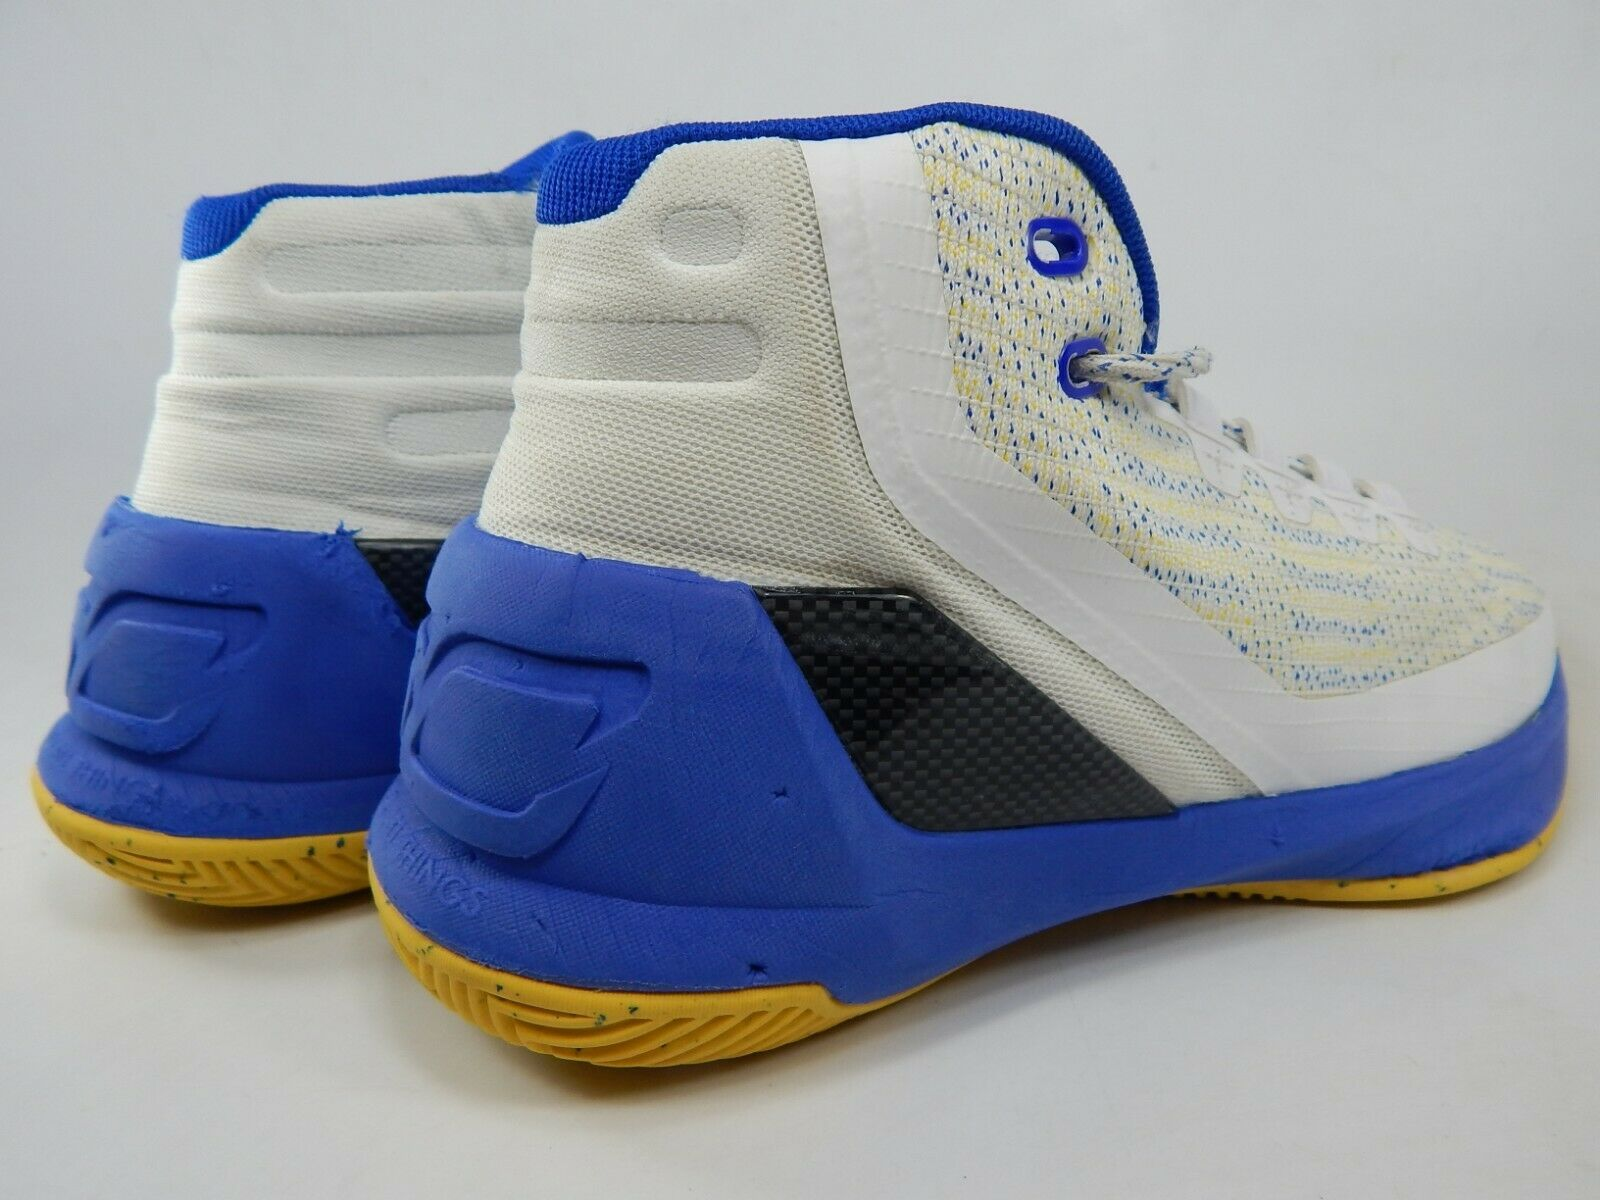 Under Armour Curry 3 Size 6 M (Y) EU 38.5 Boy's Kid's Basketball Shoes 1274061